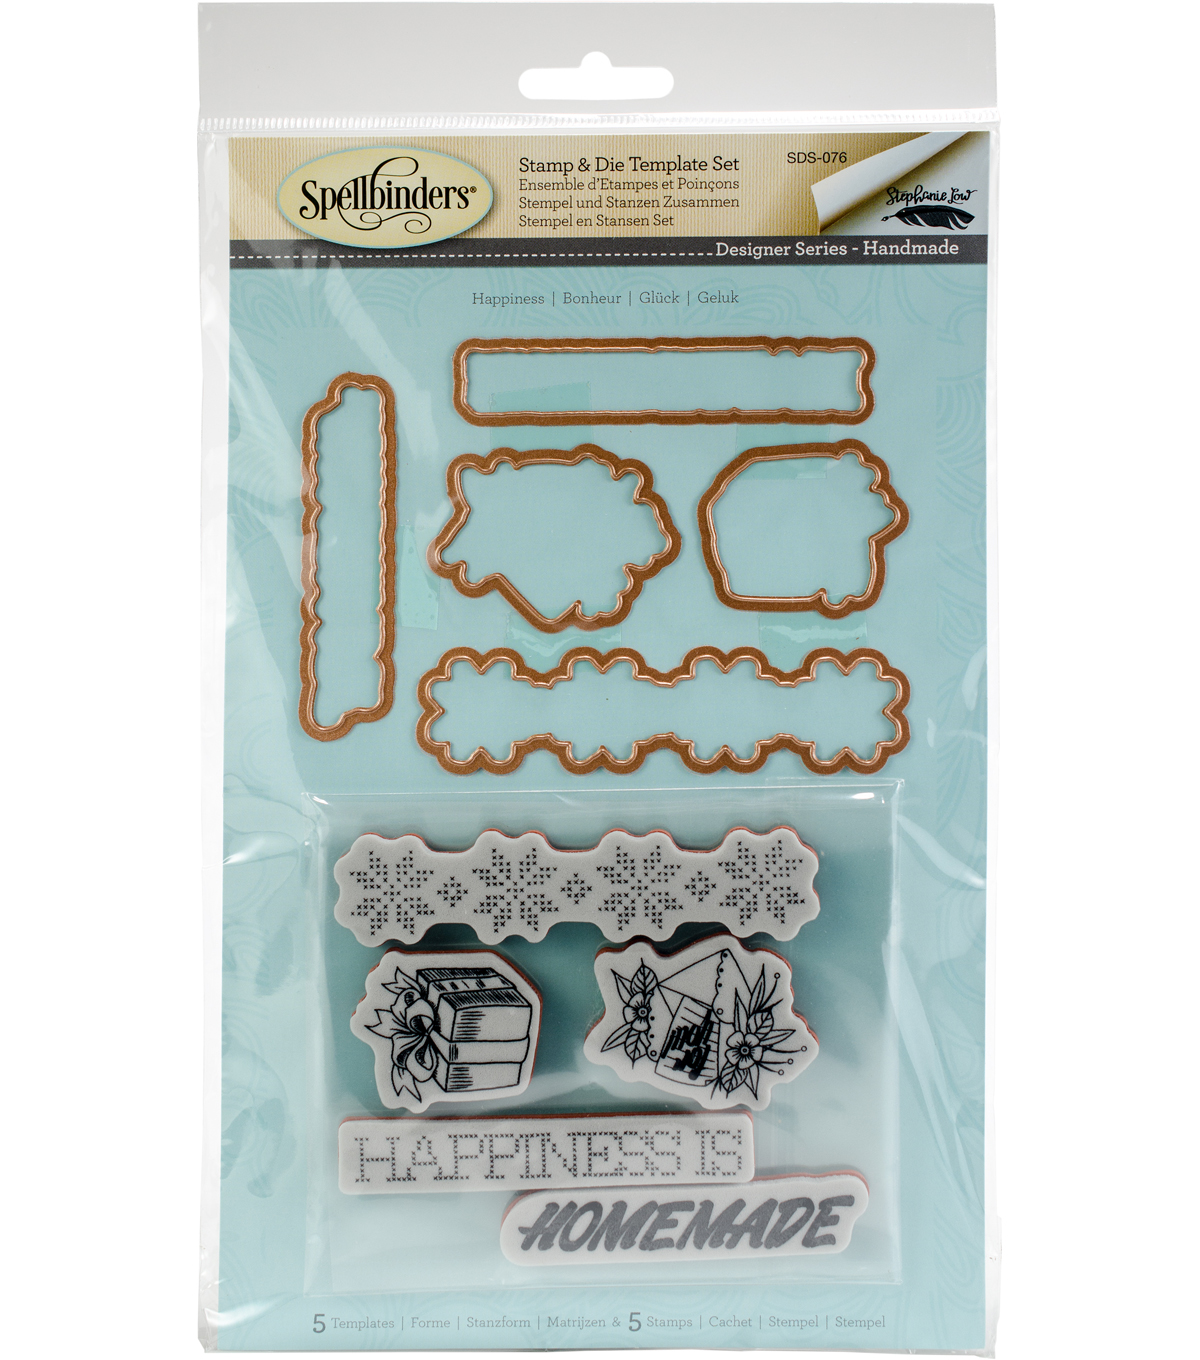 Spellbinders Handmade Stephanie Low Stamp & Die Set-Happiness